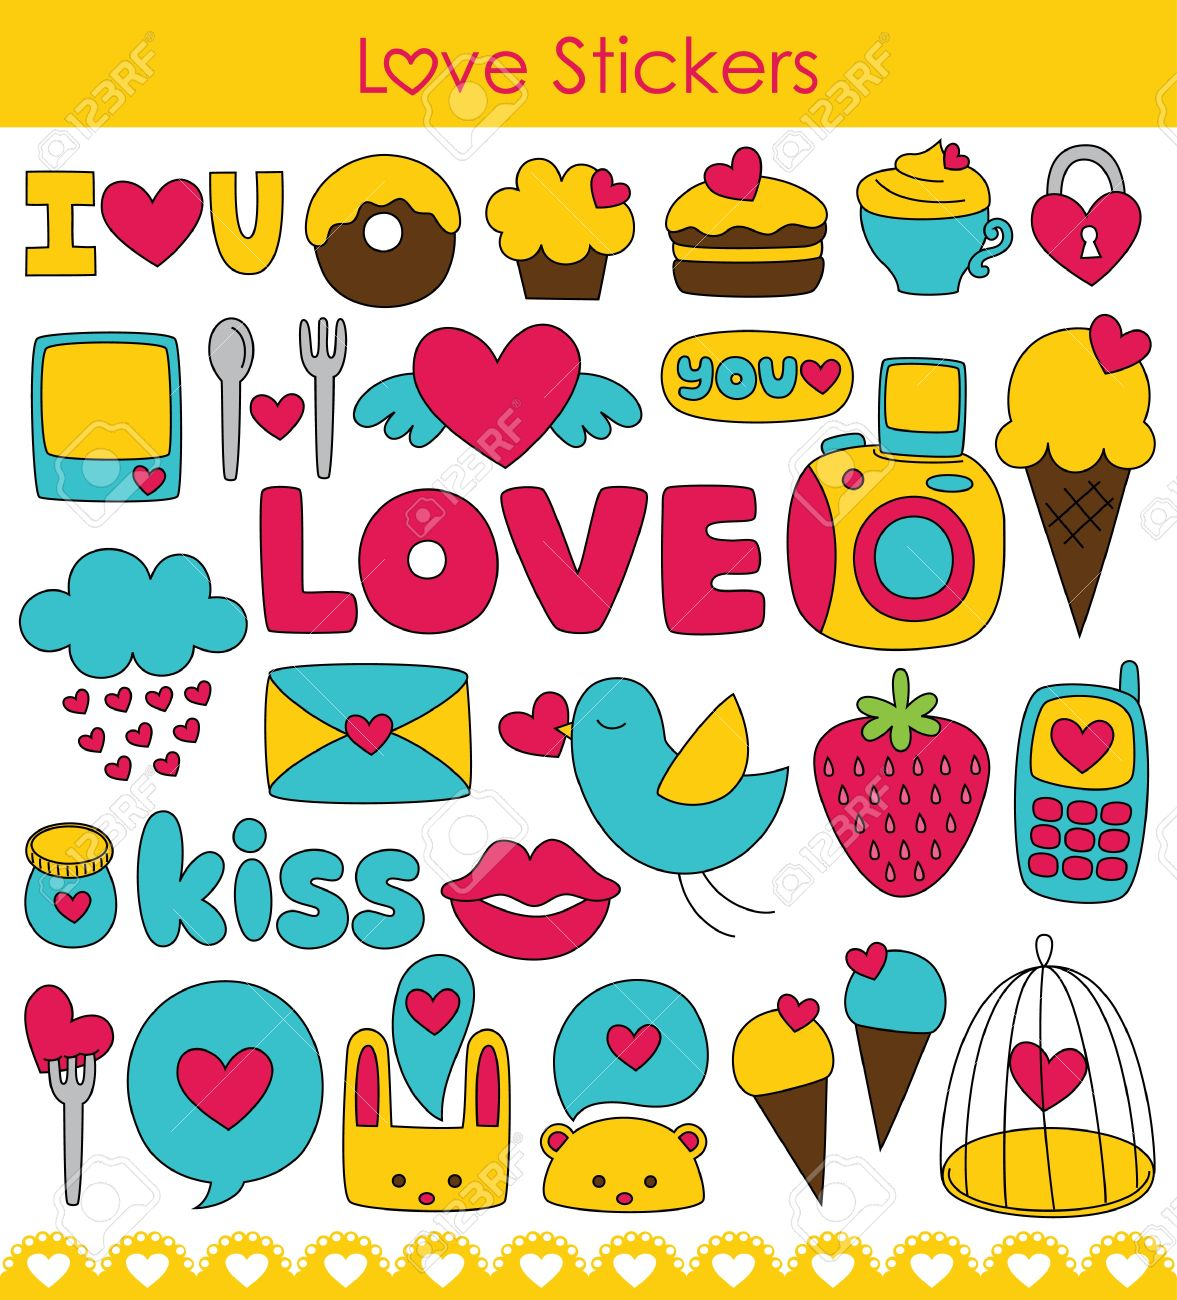 Love Stickers Collection Vector Illustration Royalty Free Cliparts